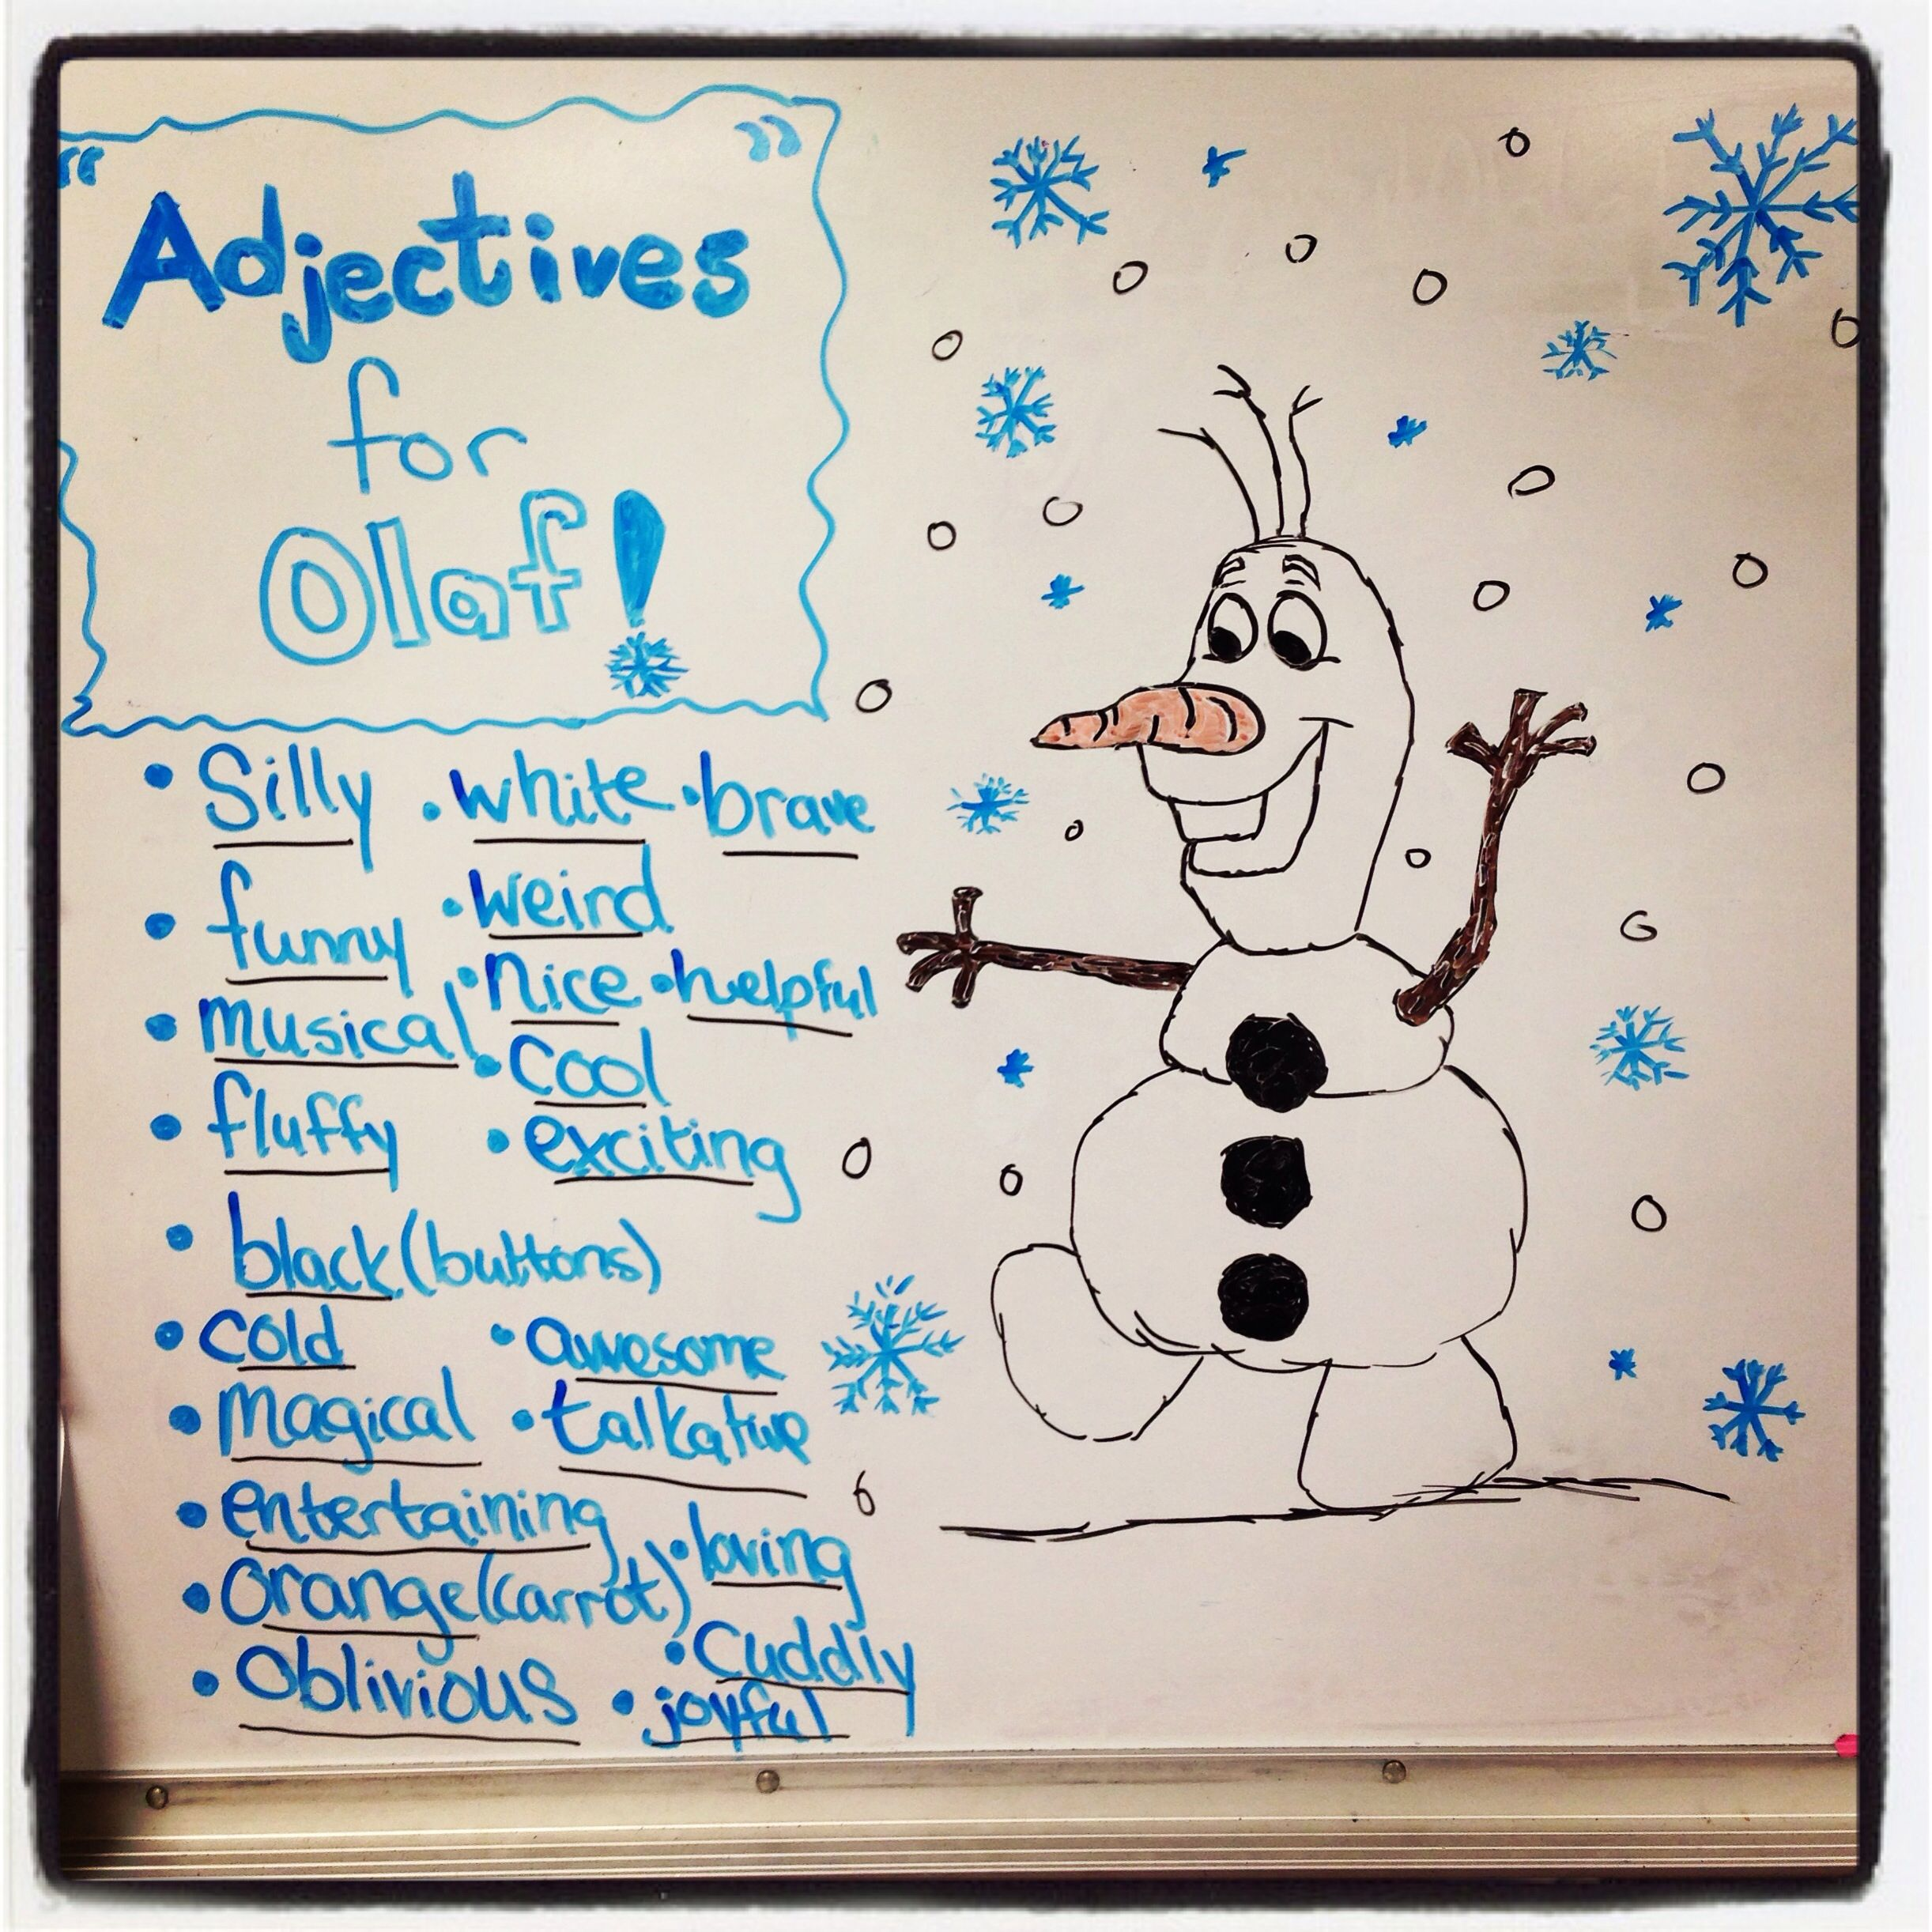 Adjectives For Olaf Learning Adjectives On The